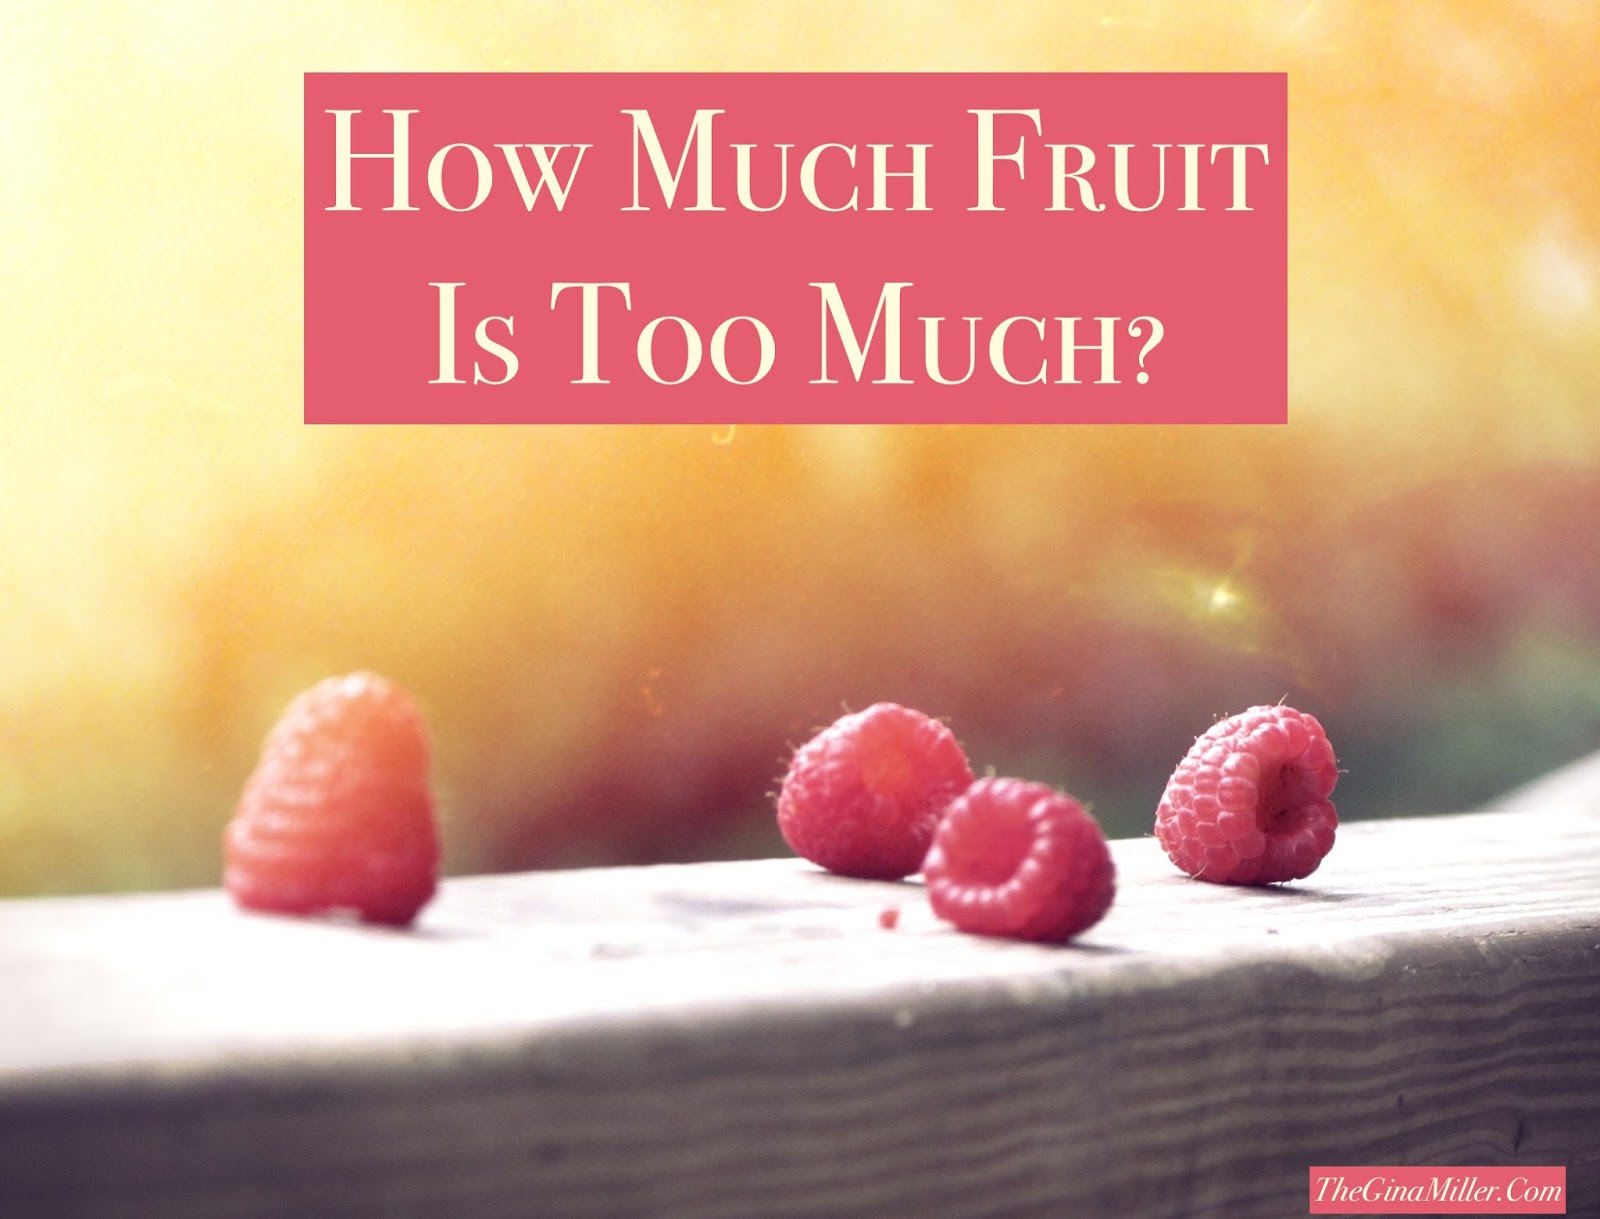 Doe fruit make you fat, How much fruit is too much, is fruit fattening